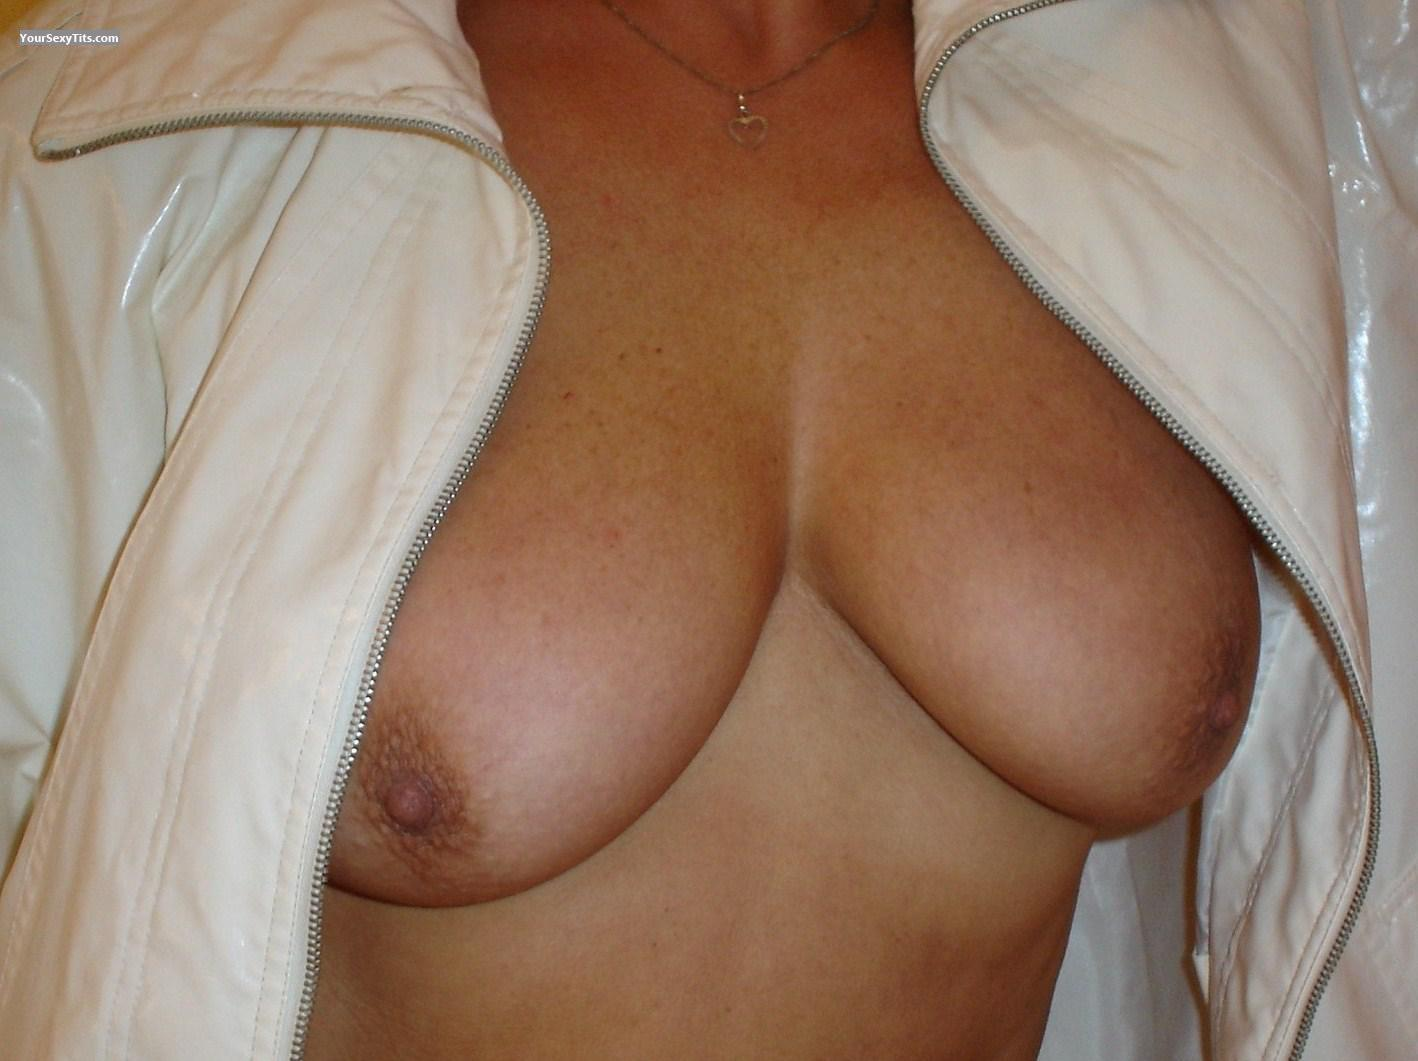 Tit Flash: Big Tits - Bianca from France